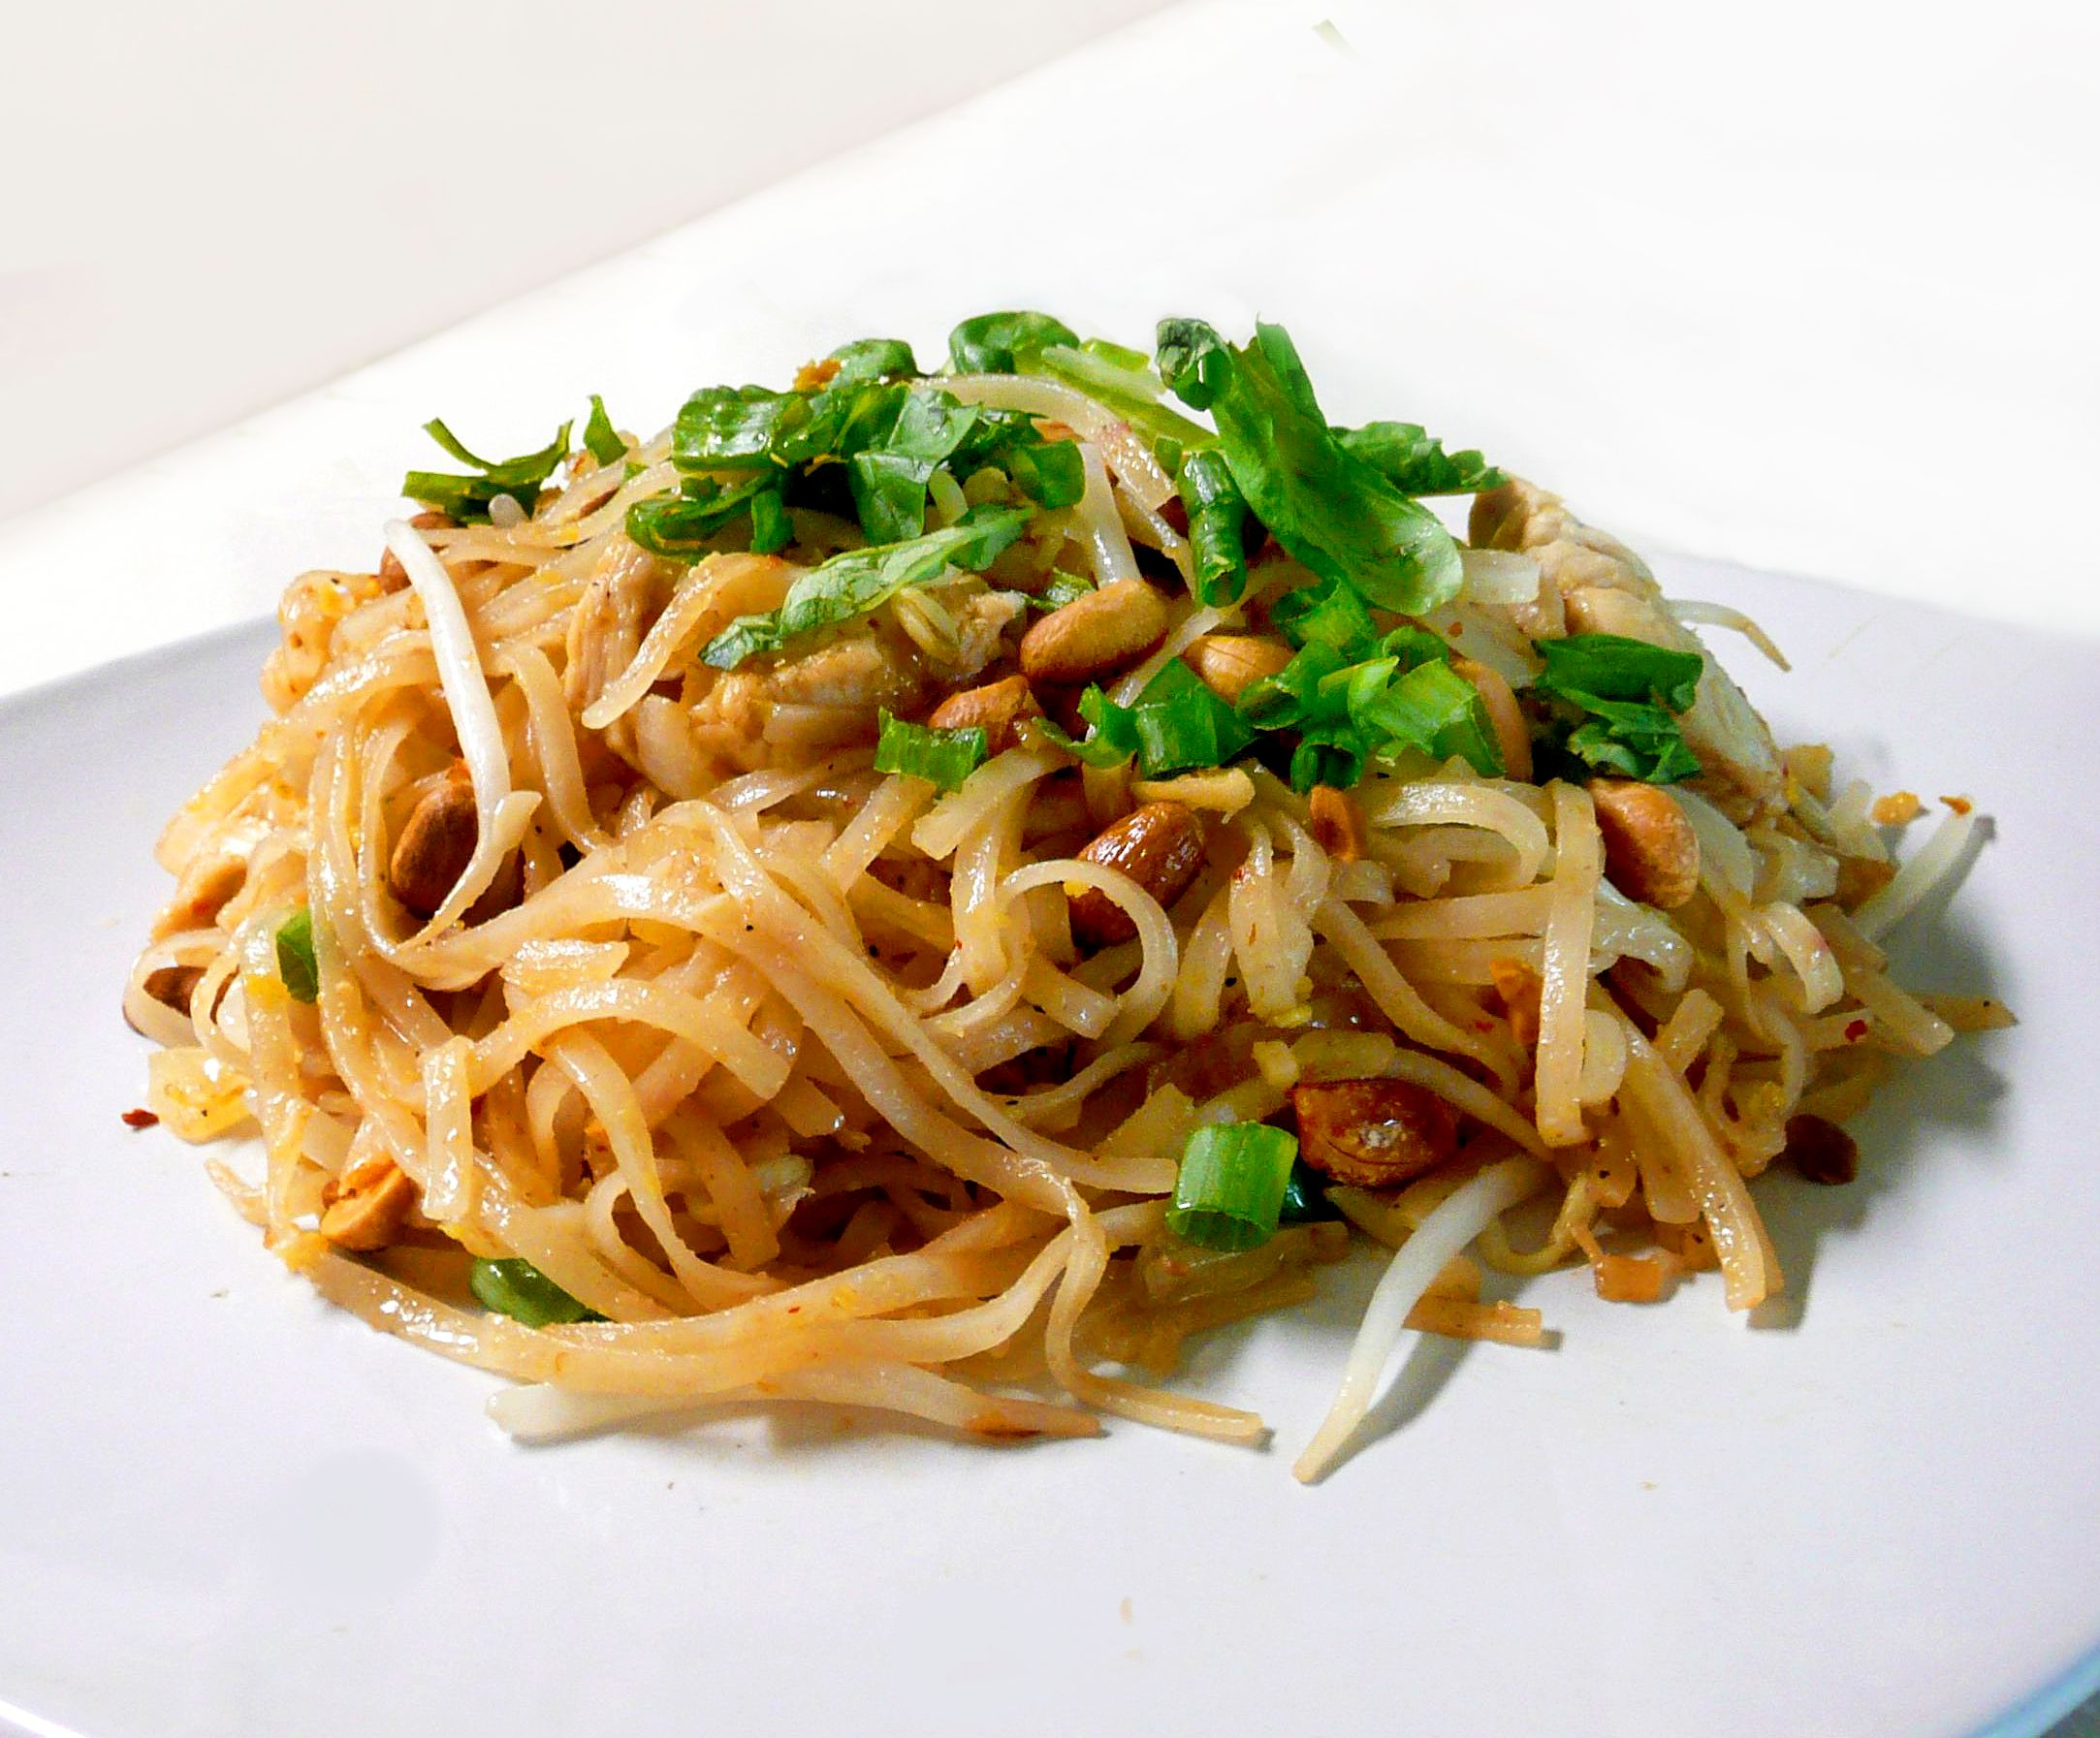 Pad Thai Noodles Pad thai is a dish made with